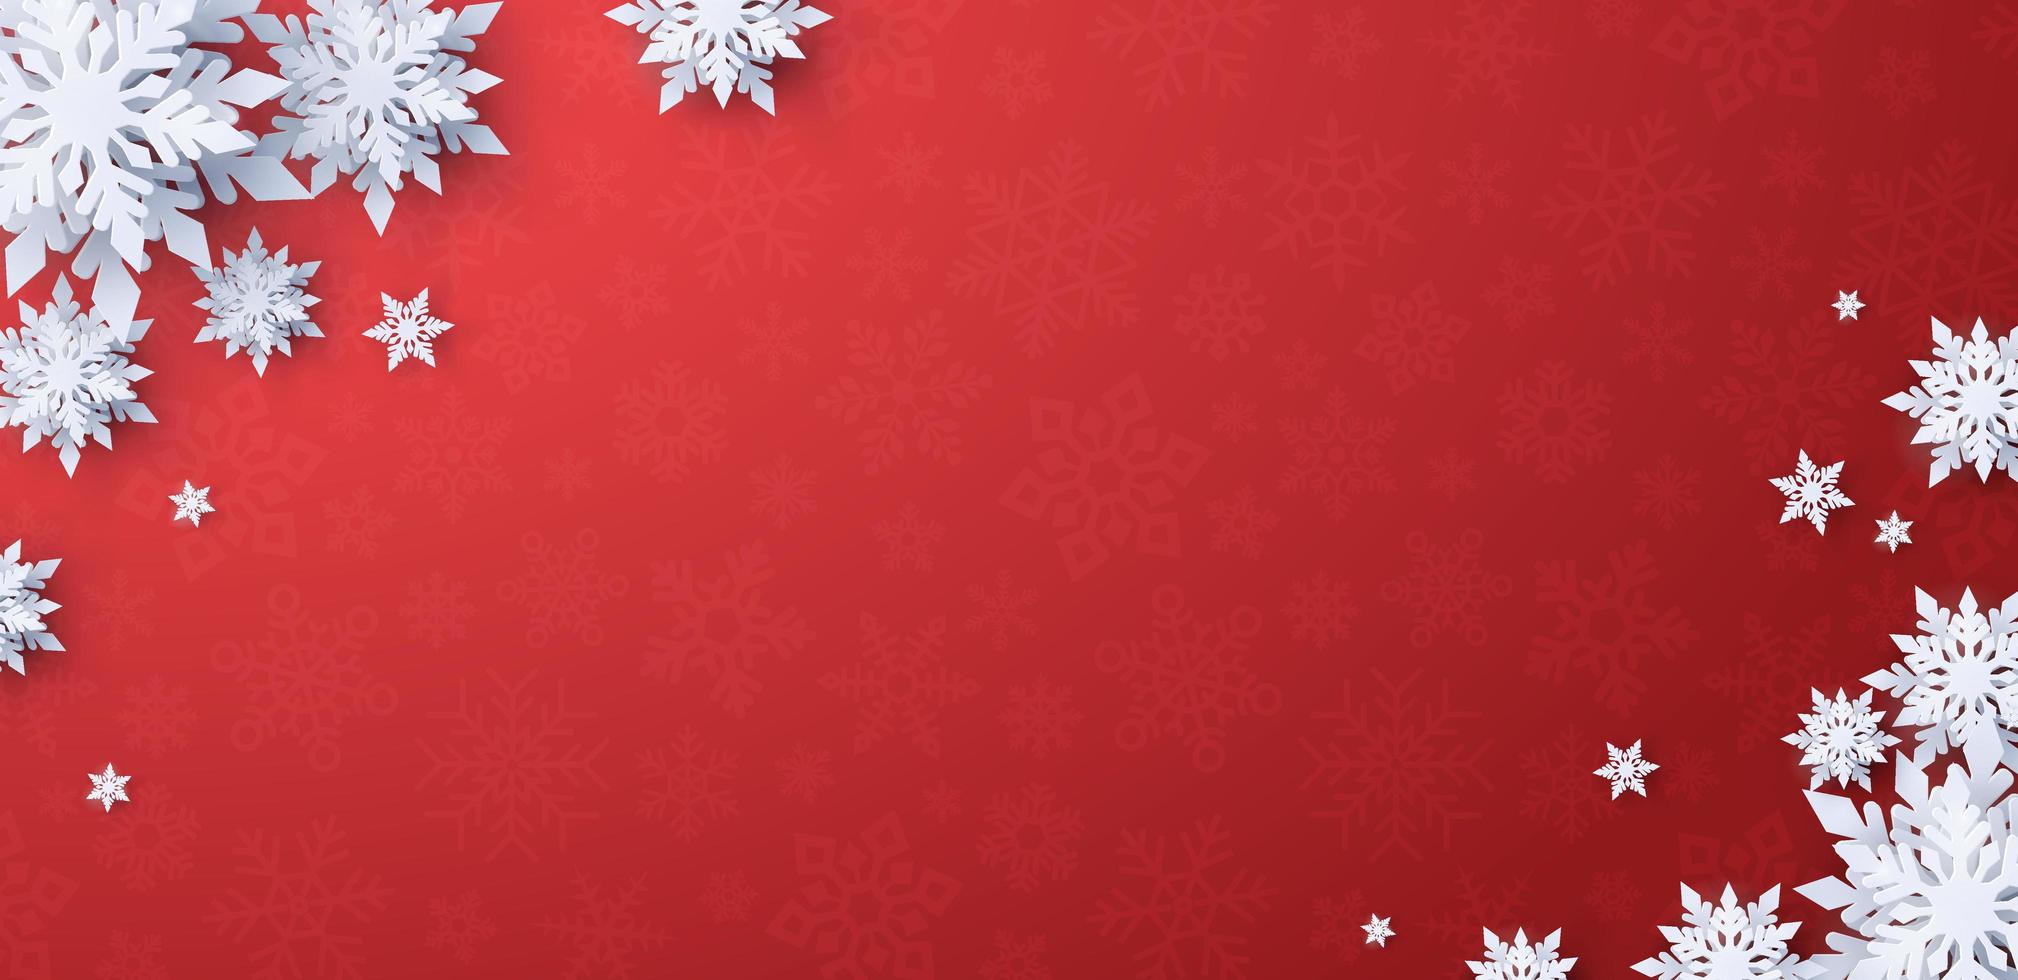 Christmas red banner background with snowflakes vector